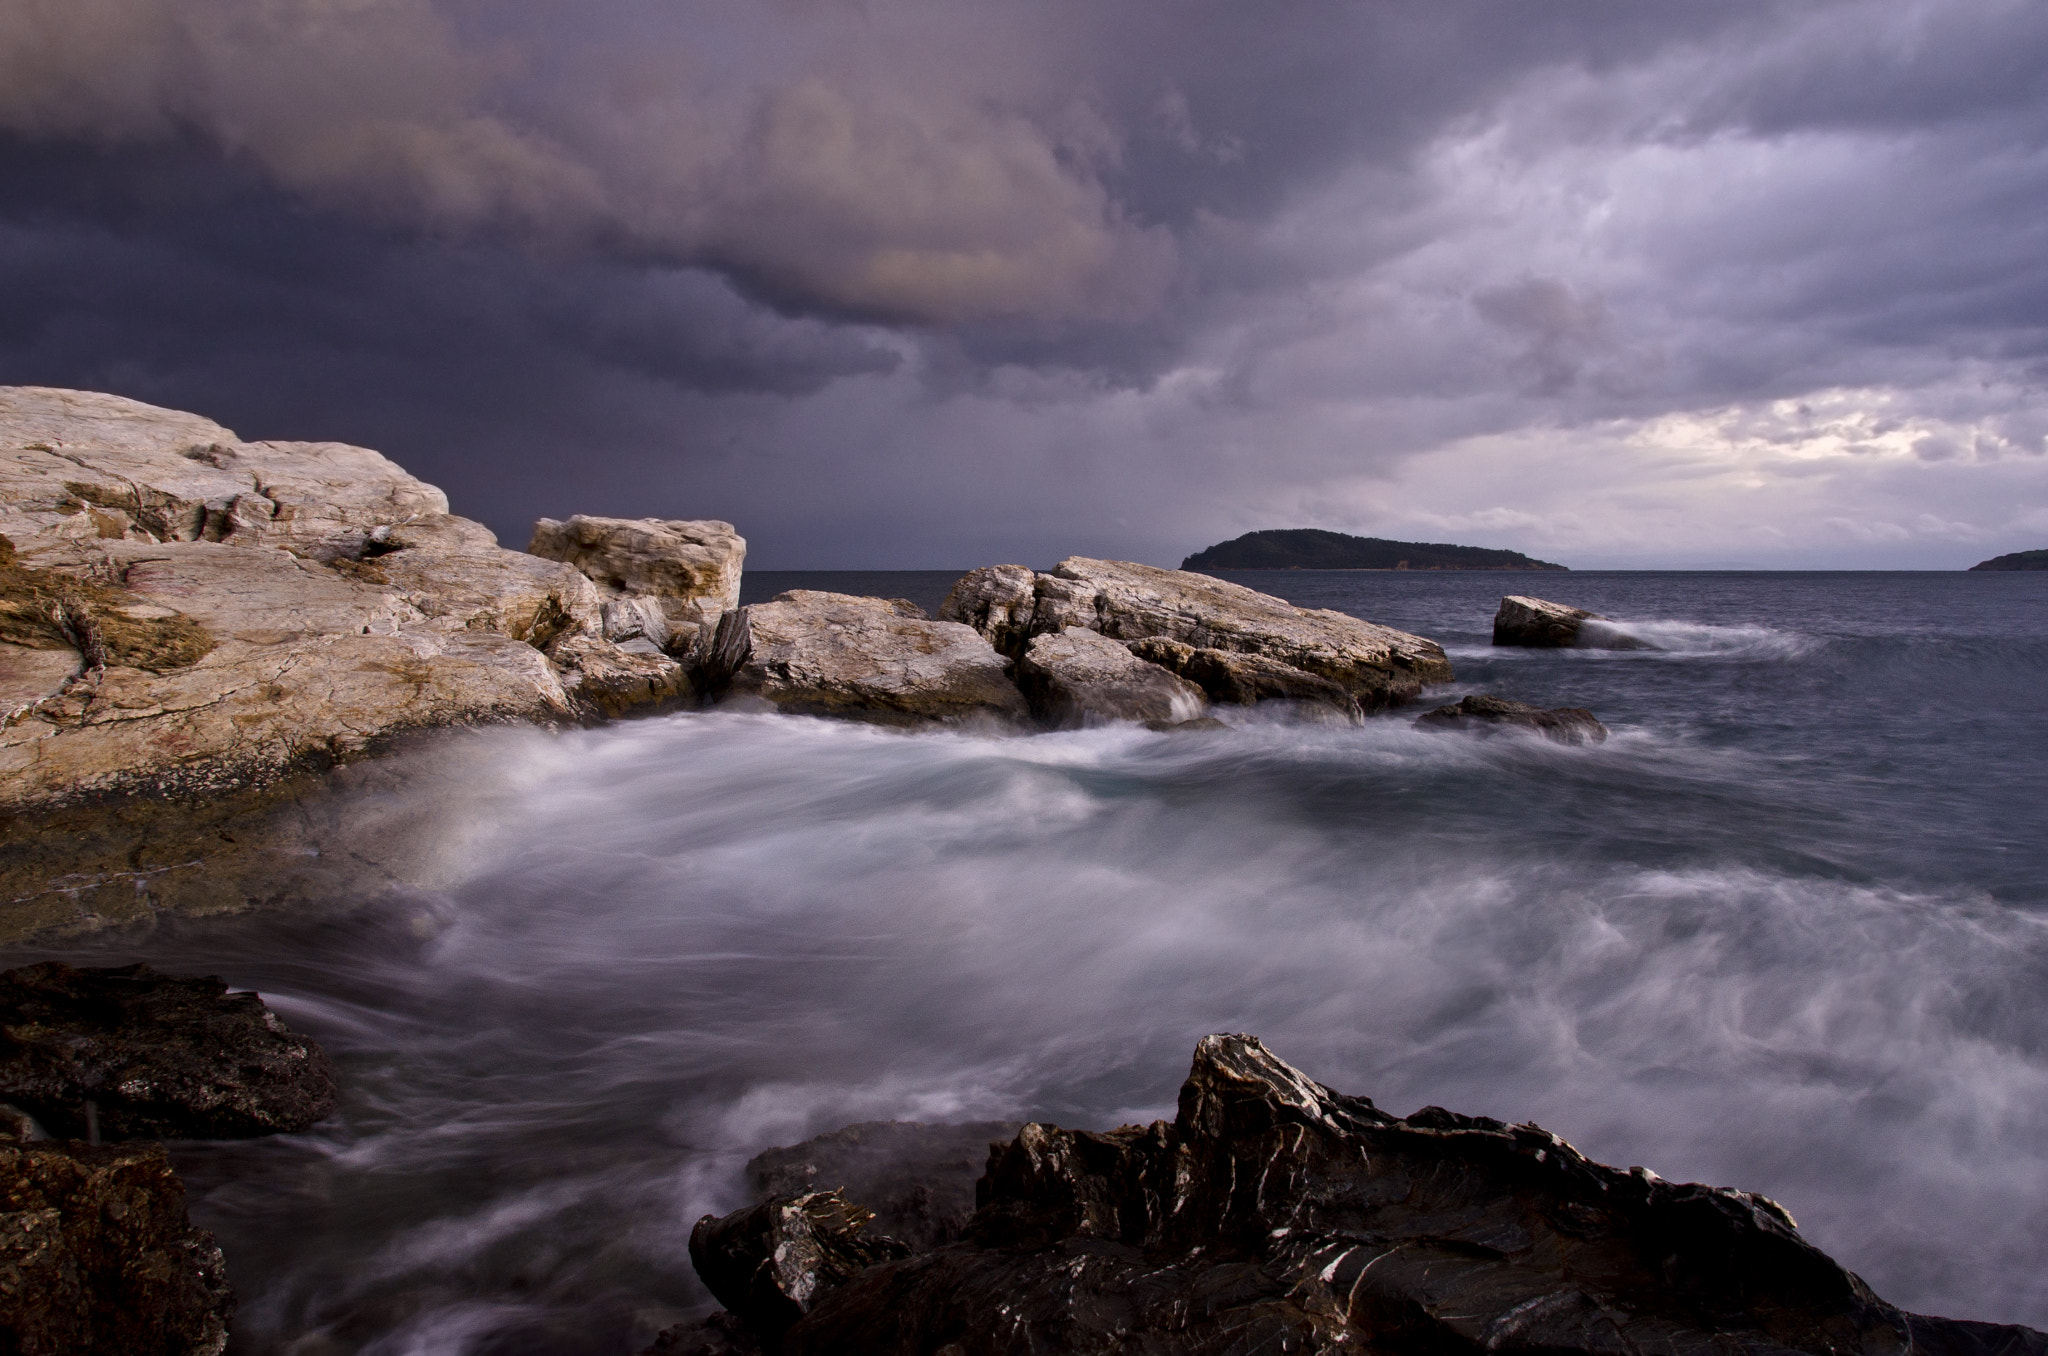 Photograph STORM IS COMING by Konstantinos Goulas on 500px